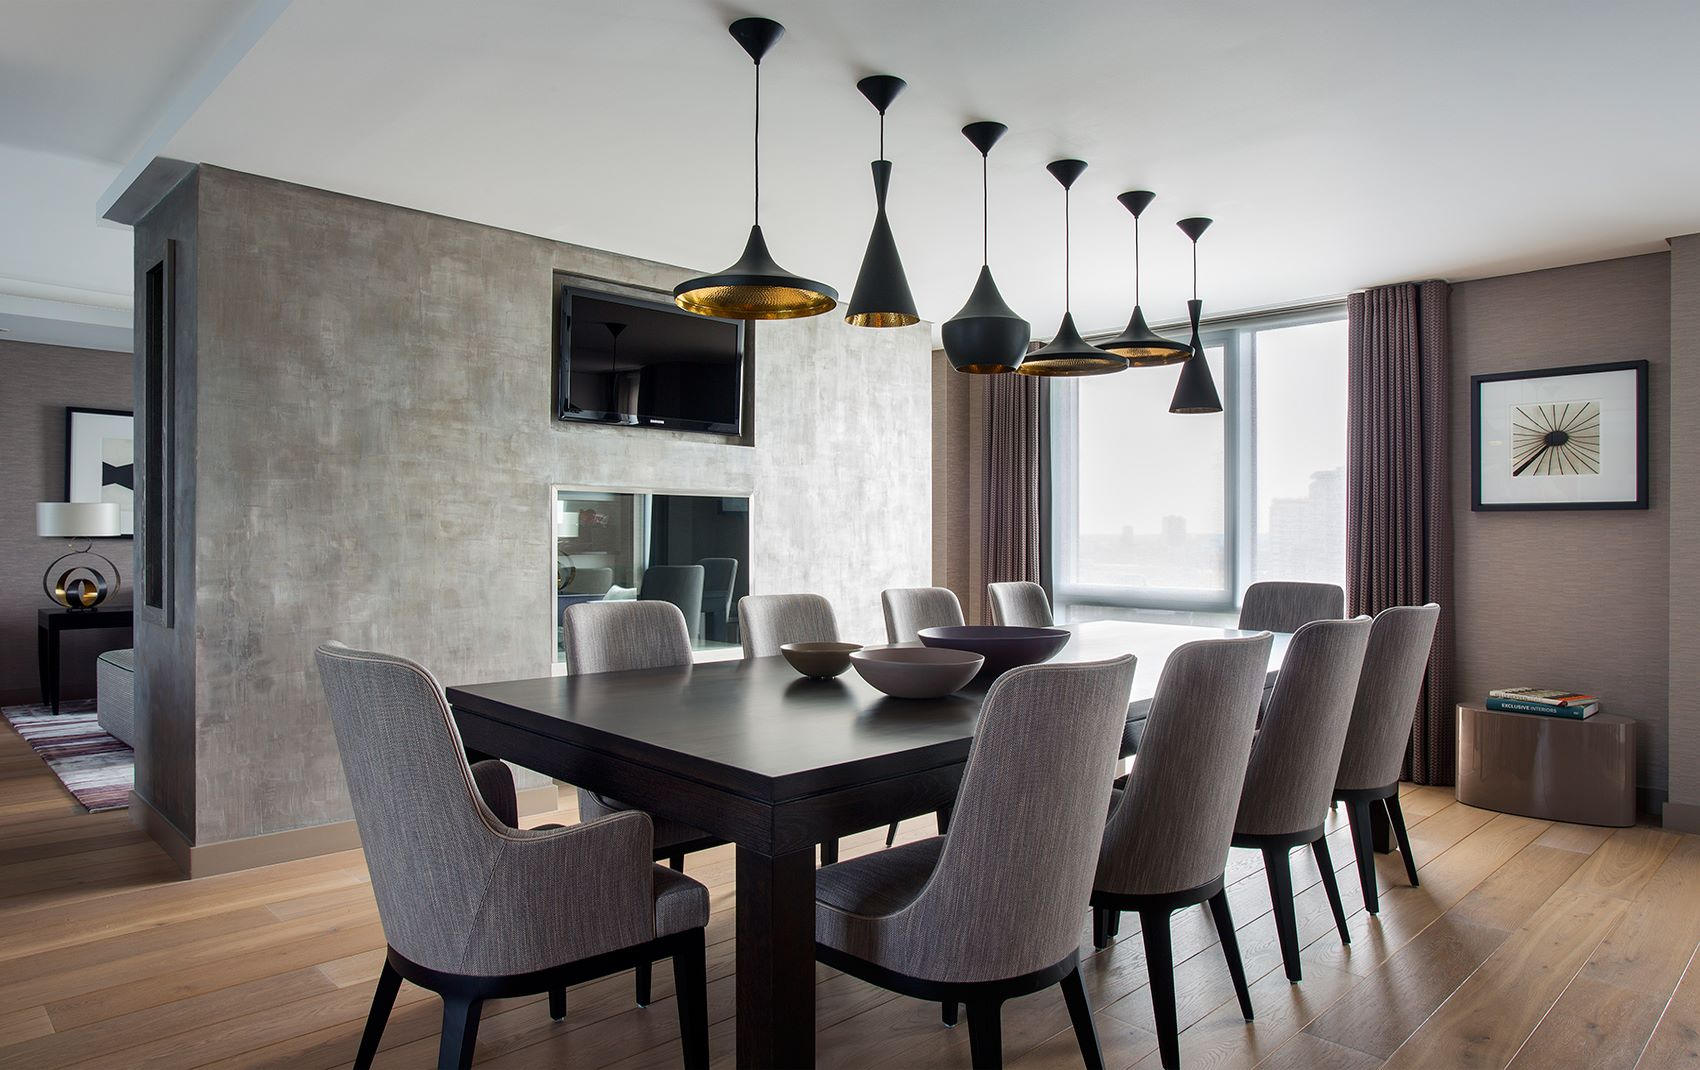 west london penthouse - large dining room table seating 10